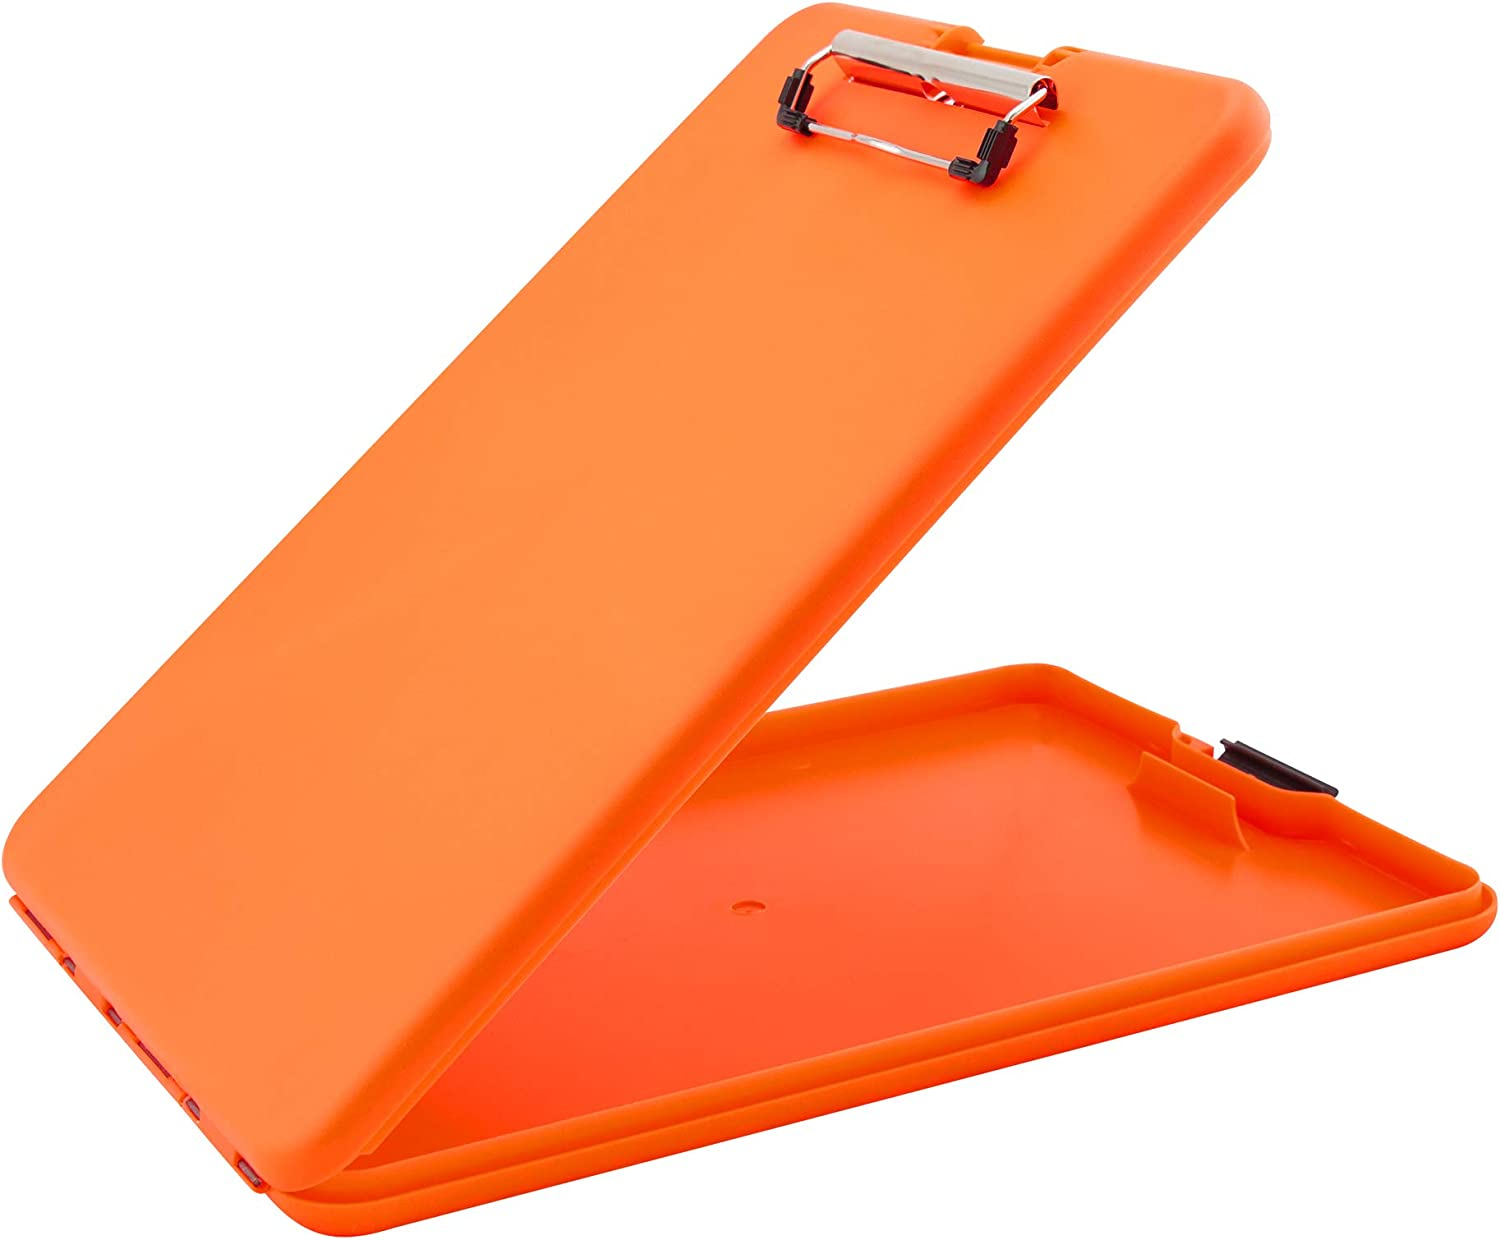 Saunders Bright Orange SlimMate Plastic Storage Clipboard – Letter Size Form Holder. Ergonomic Recordkeeping Clipboard for Professionals. Stationery Supplies